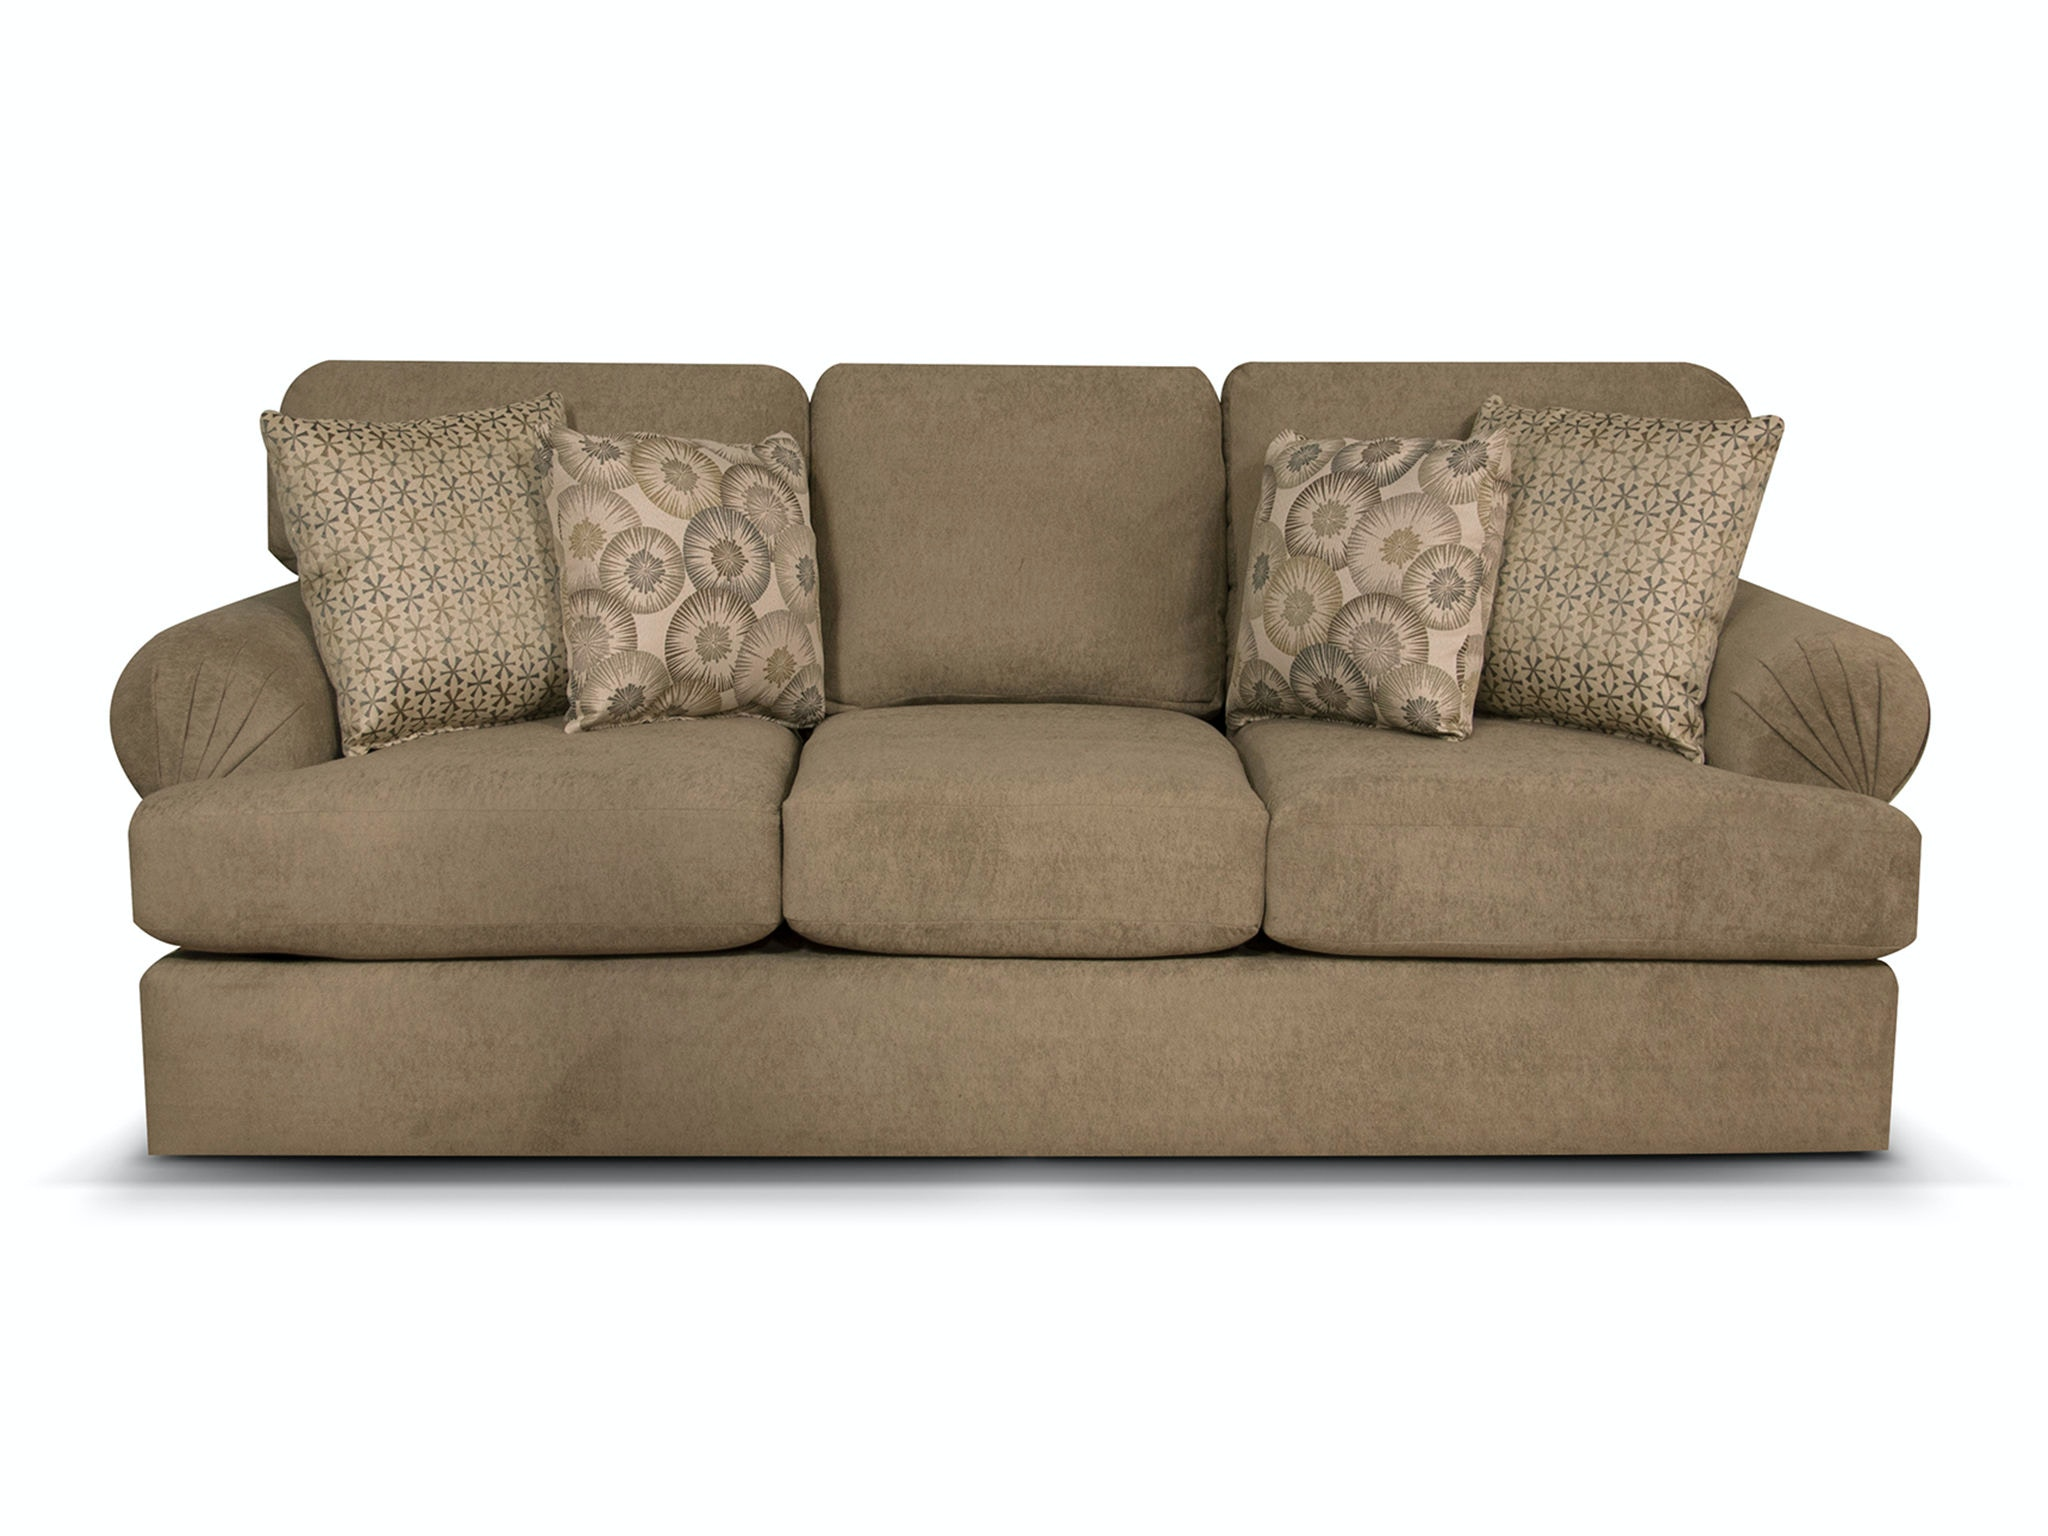 Sectional Vs Sofa And Loveseat Simple Ethan Allen Sectional Couch